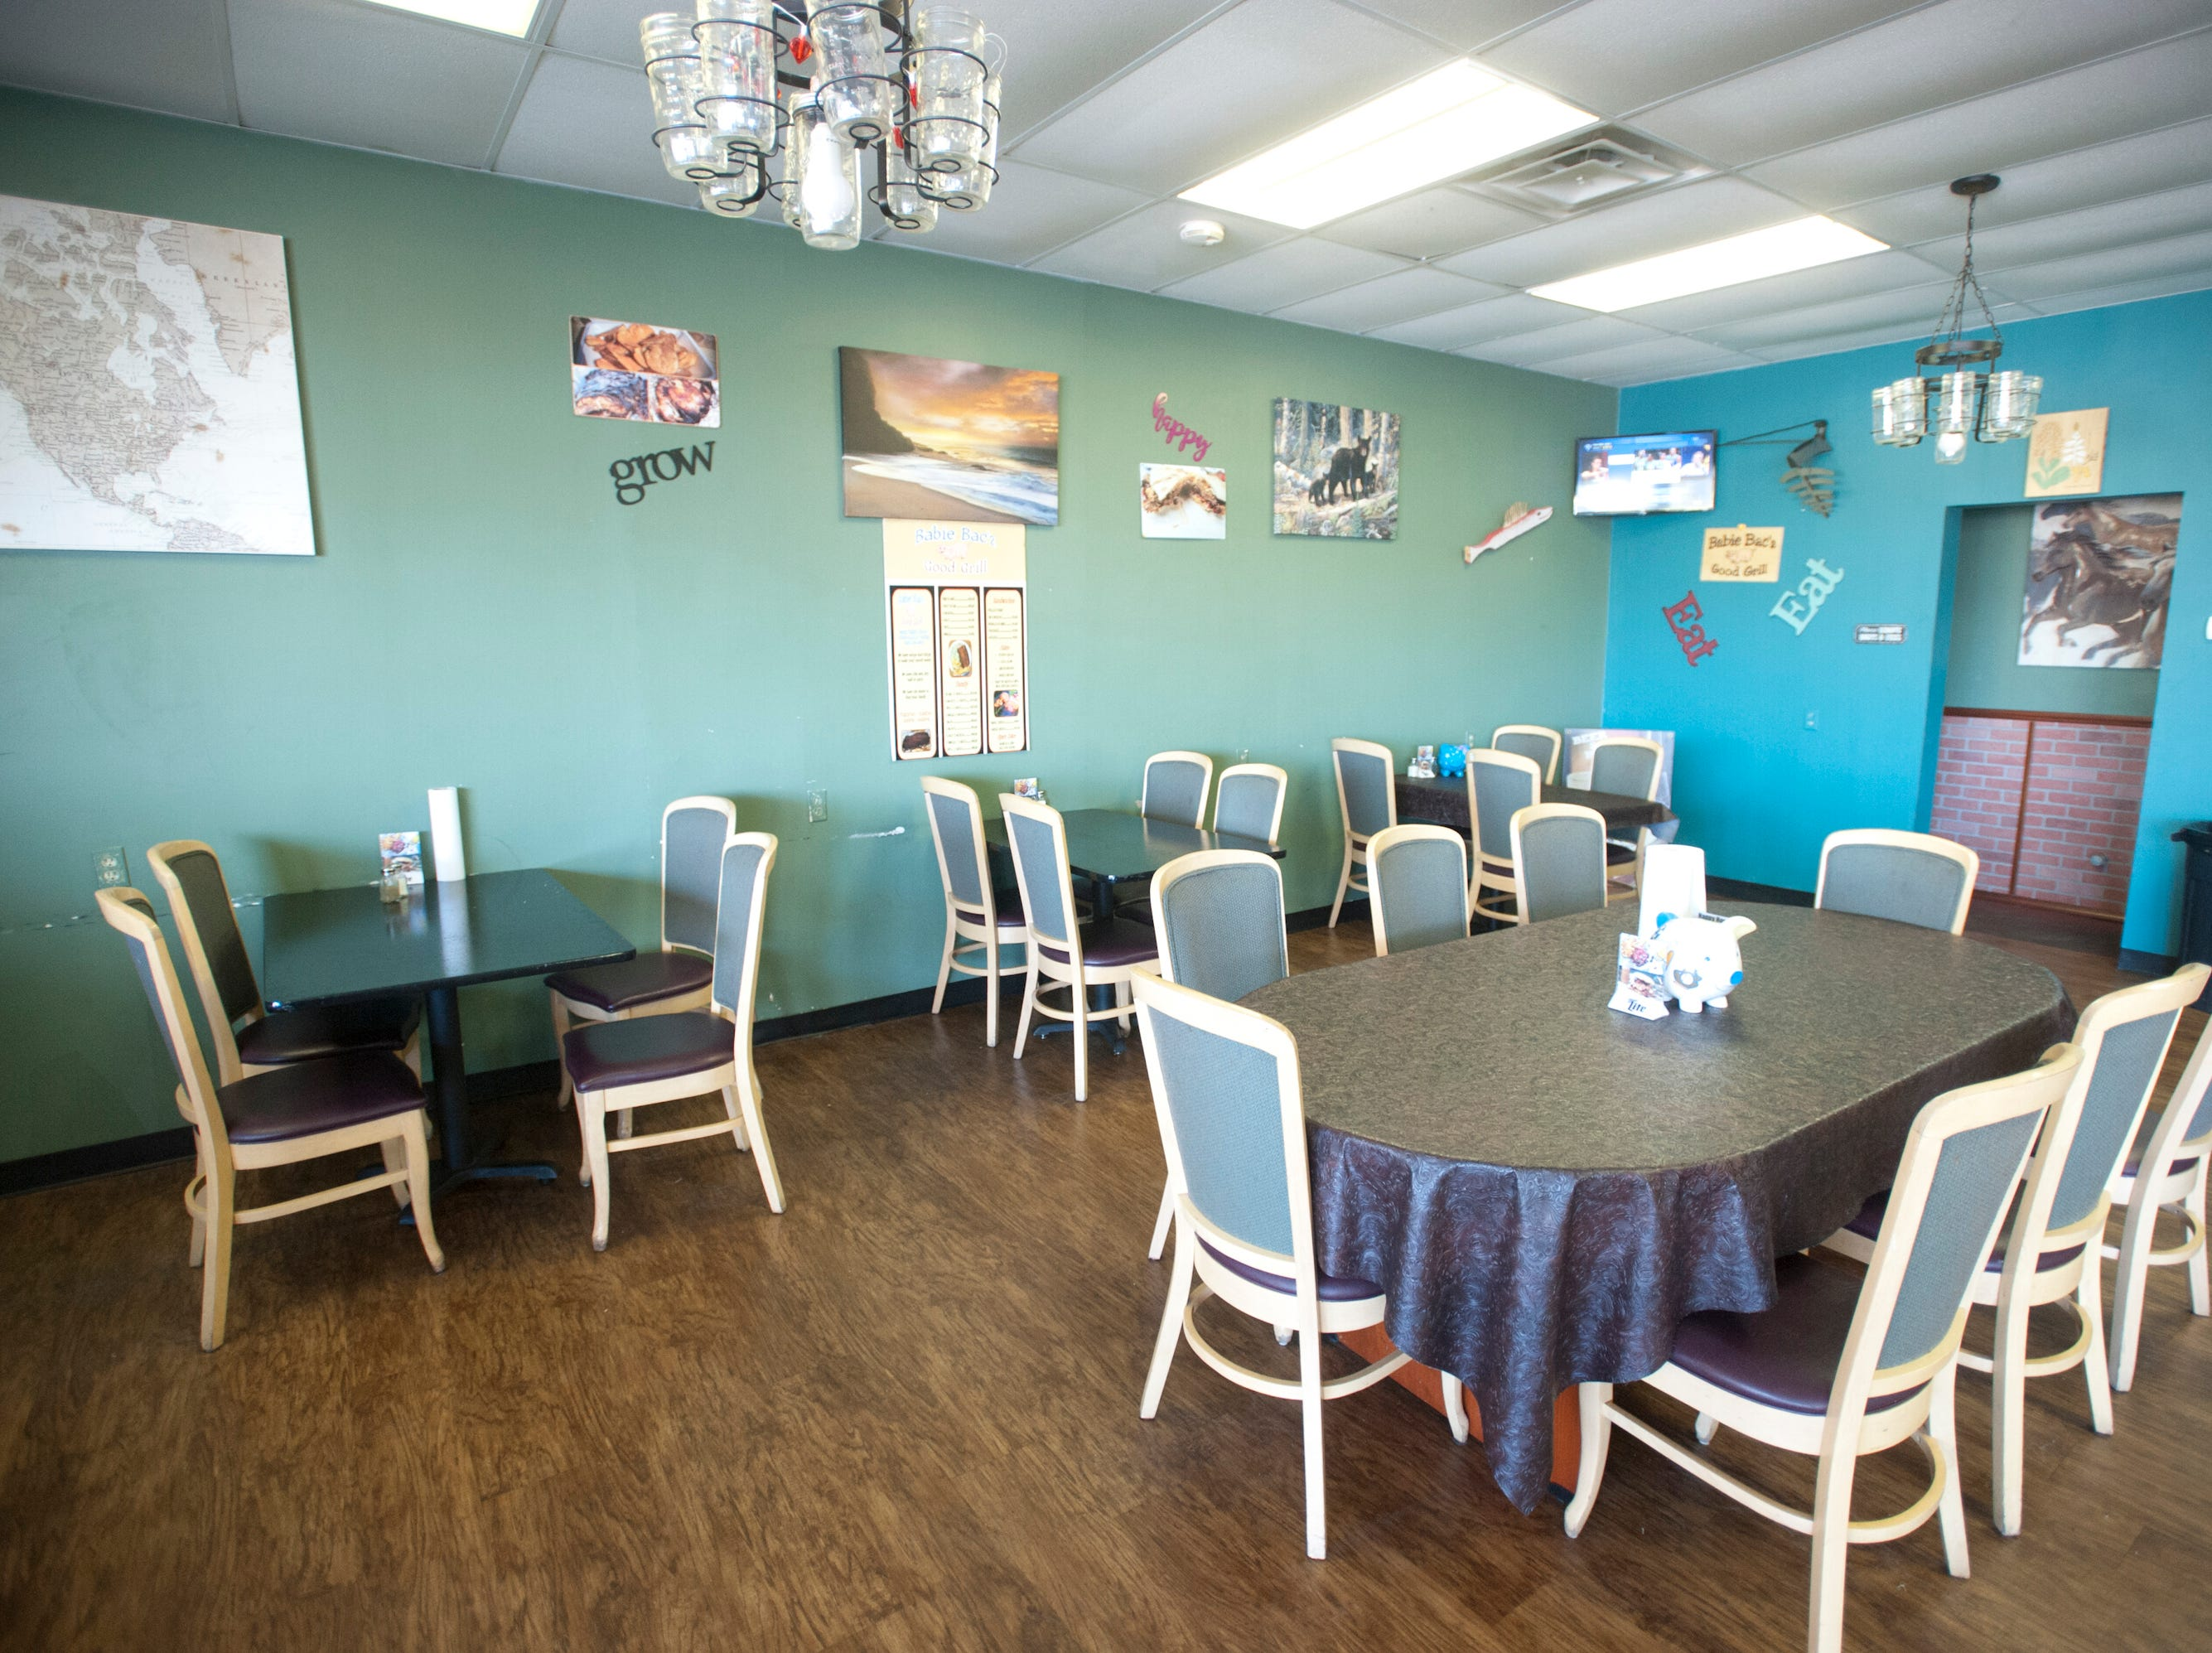 The dining room of Babie Bac'z Good Grill in the Westchester Center on Terry Road.October 24, 2018